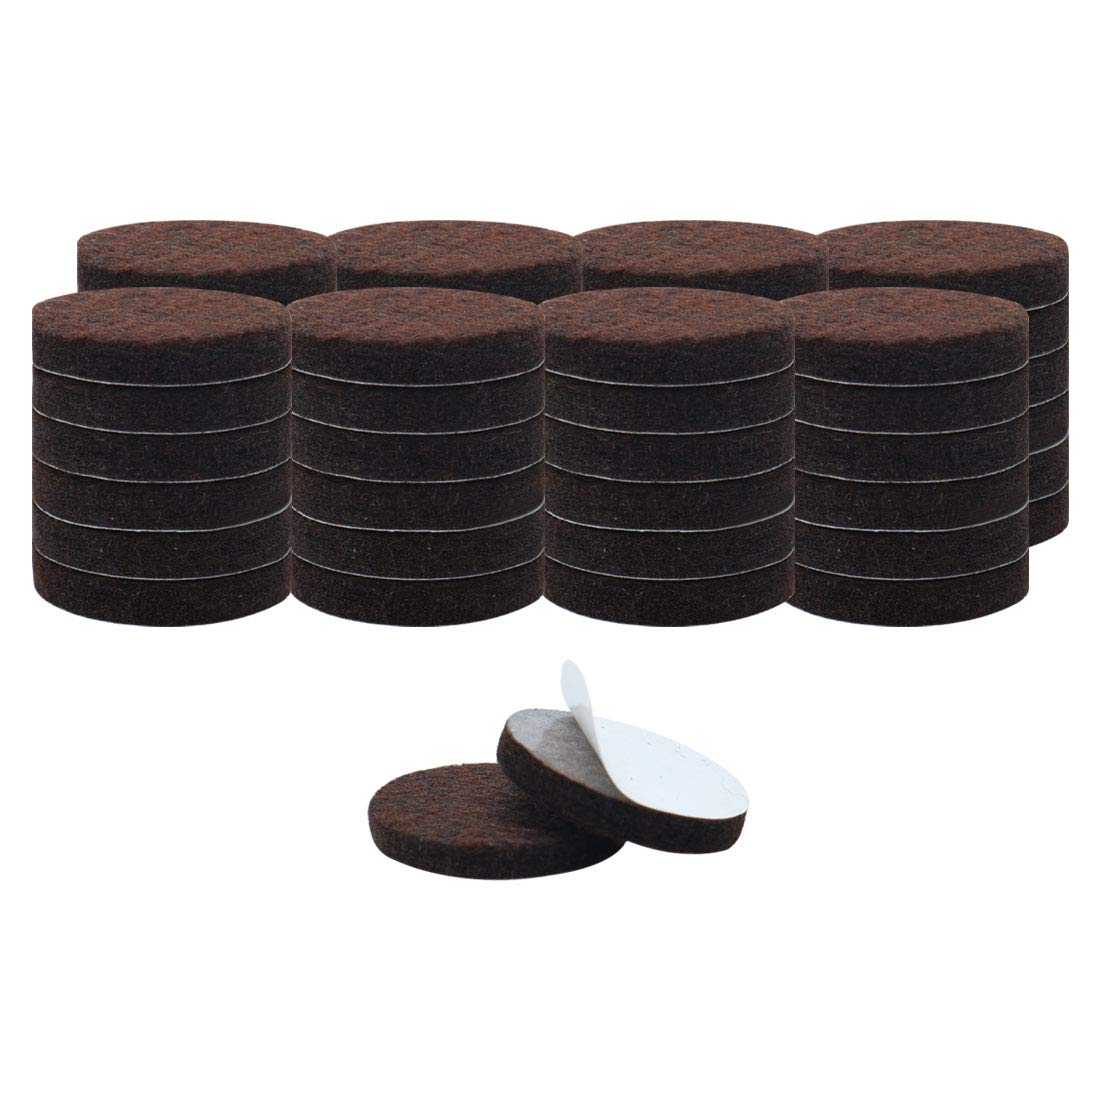 uxcell 50pcs Furniture Pads Round 1 1/4 inches Self-stick Non-slip Anti-scratch Felt Pads Floors Protector Dark Brown